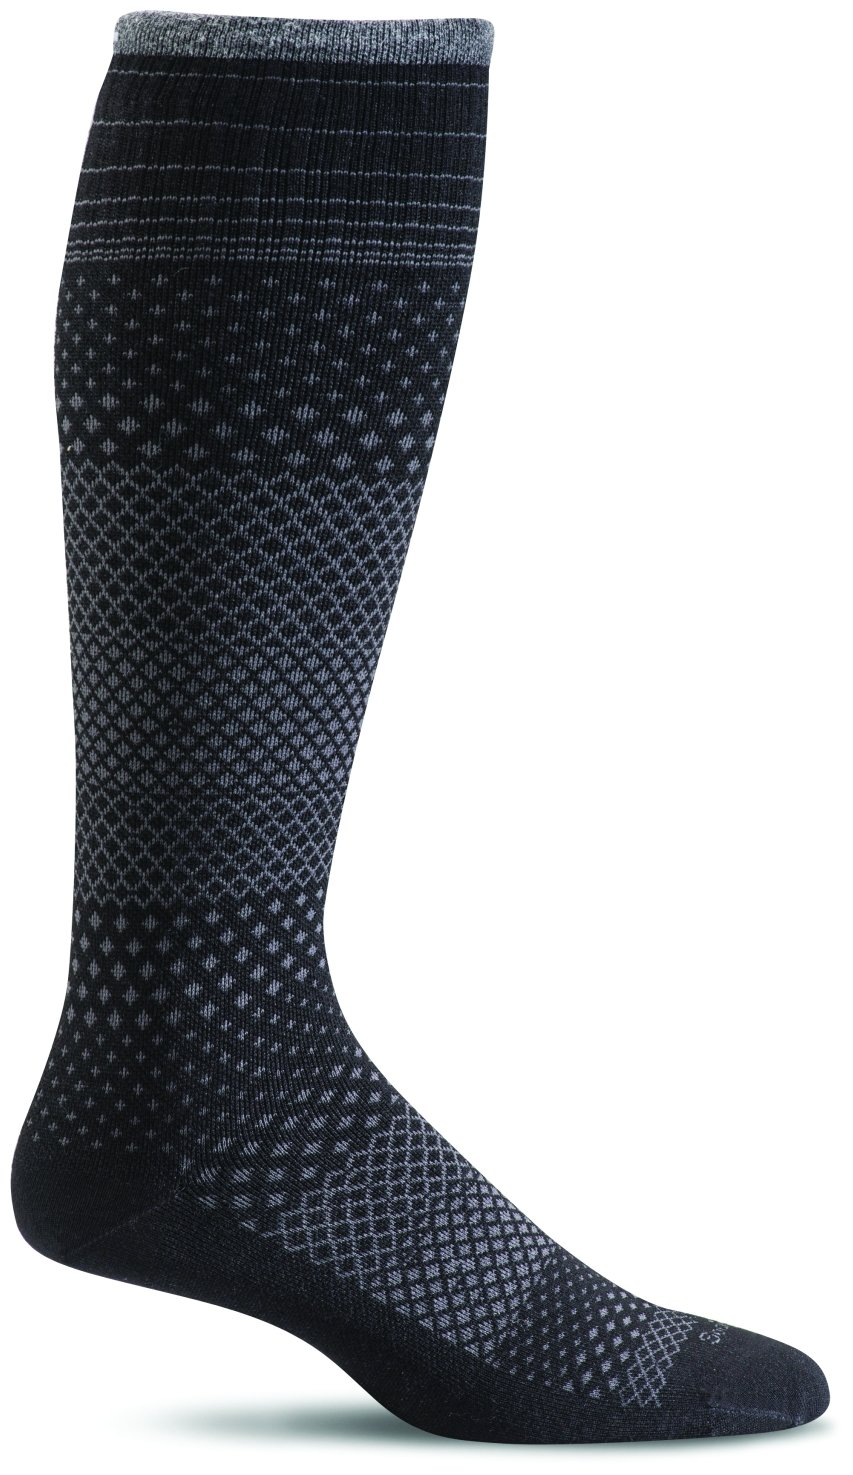 Sockwell Women's Micro Grade Graduated Compression Socks, Black, Medium/Large